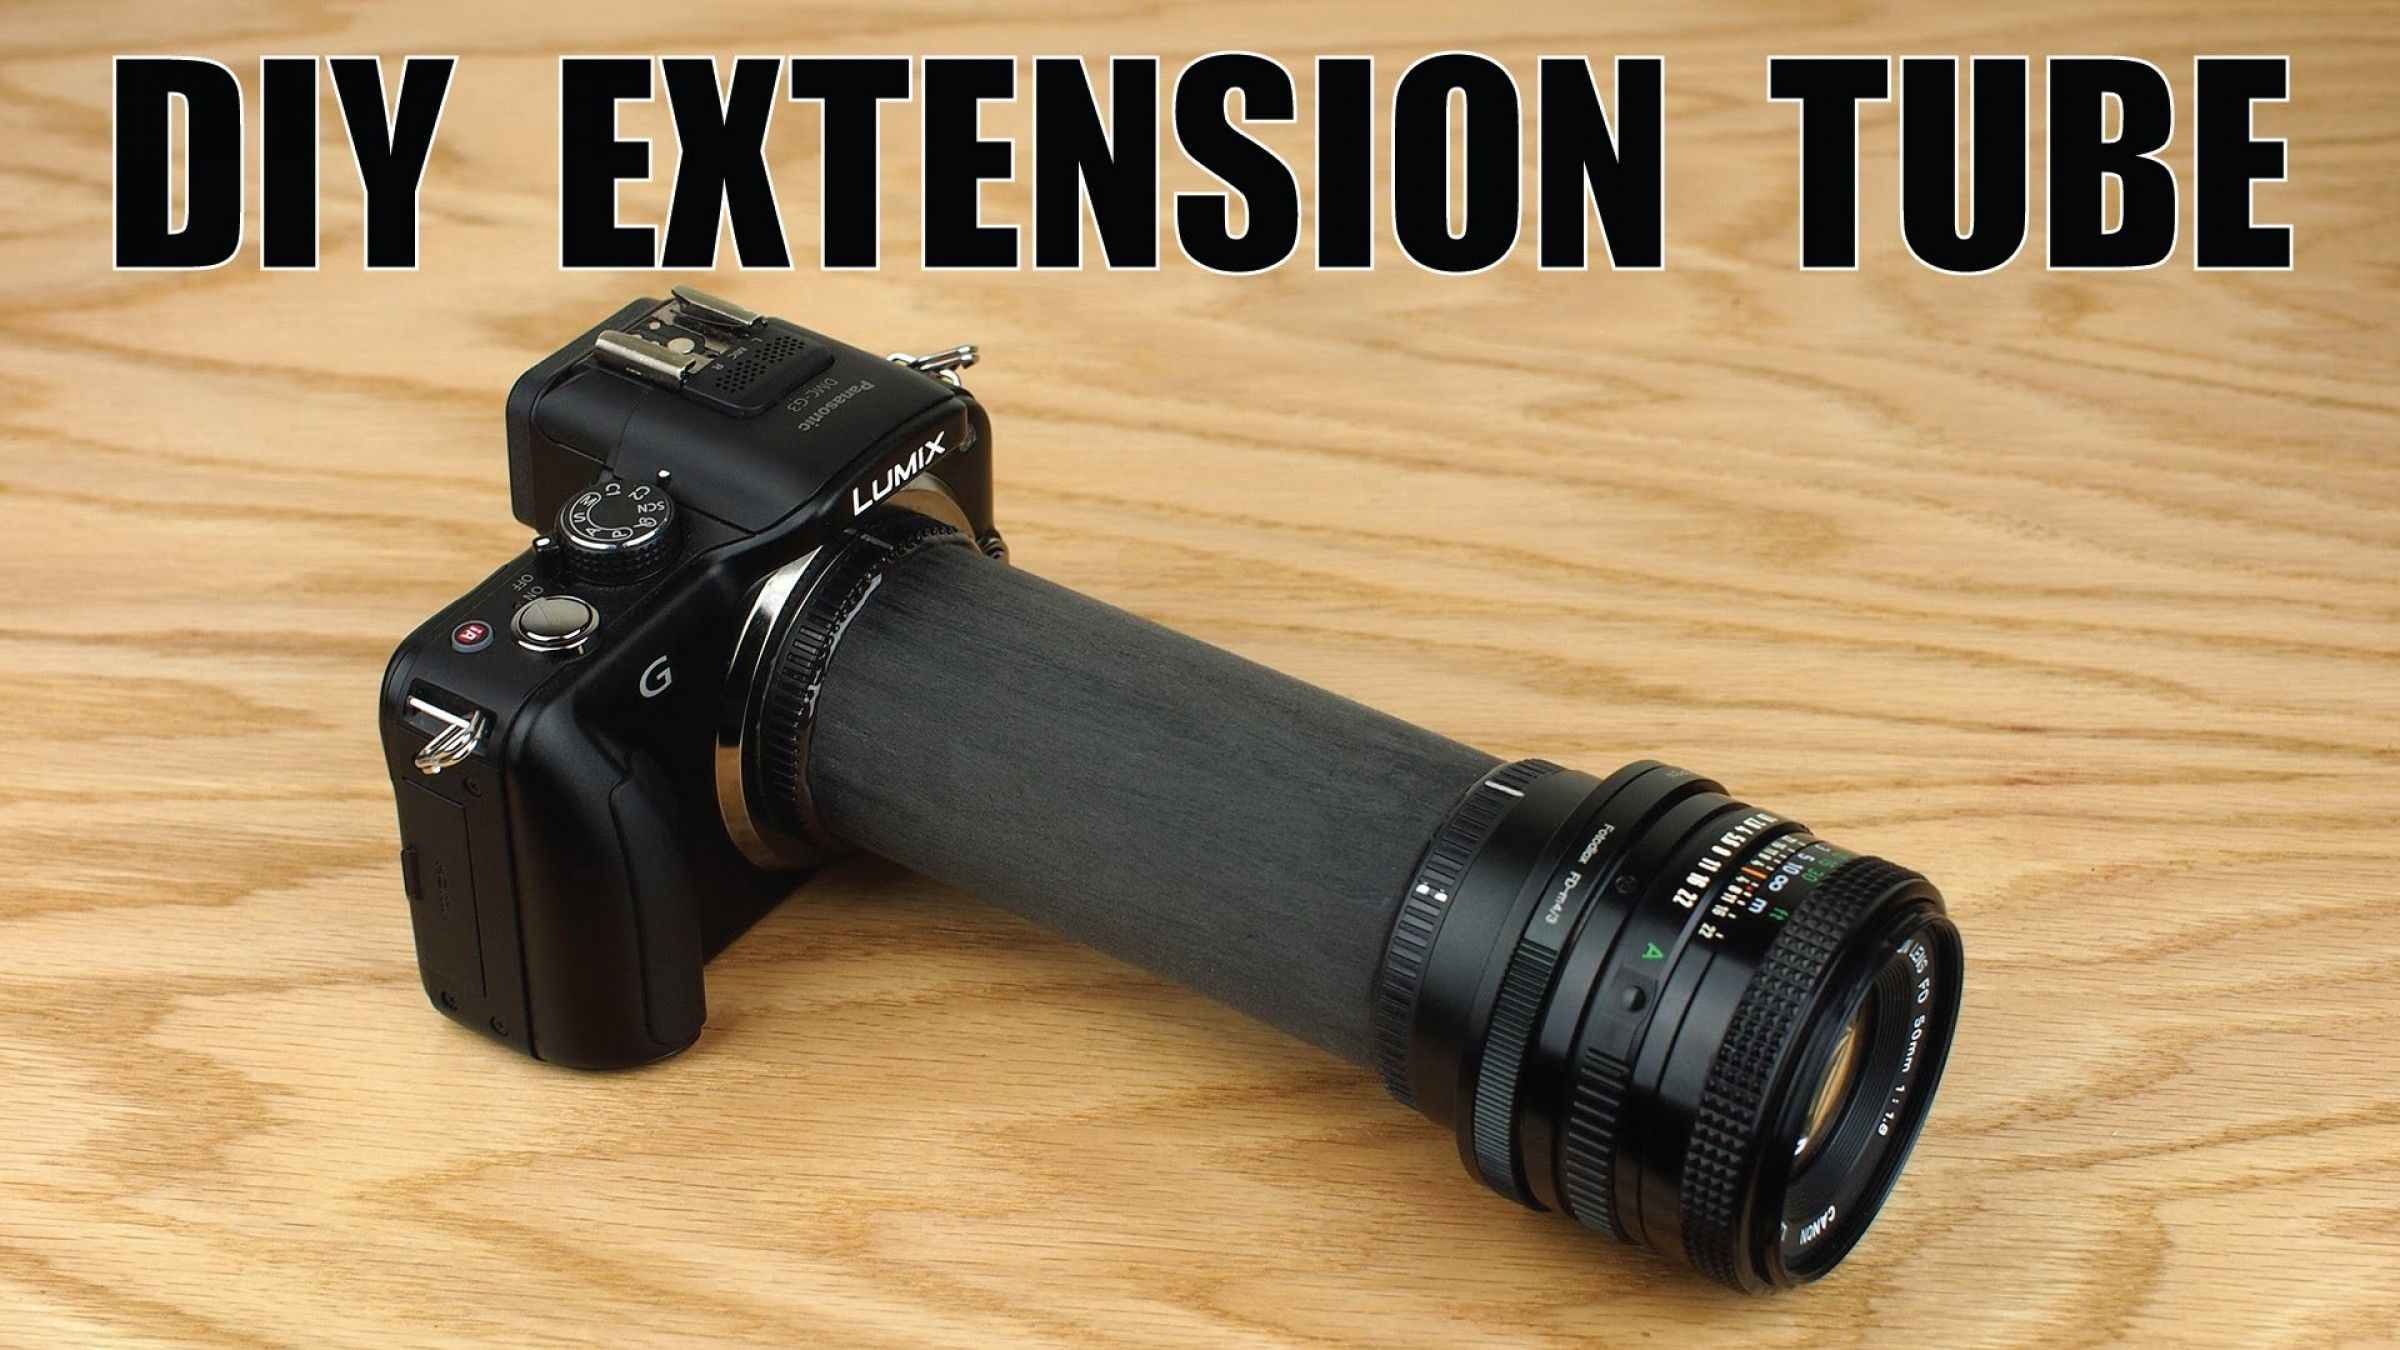 Learn How to Build Your Own Macro Extension Tube for Less Than $10